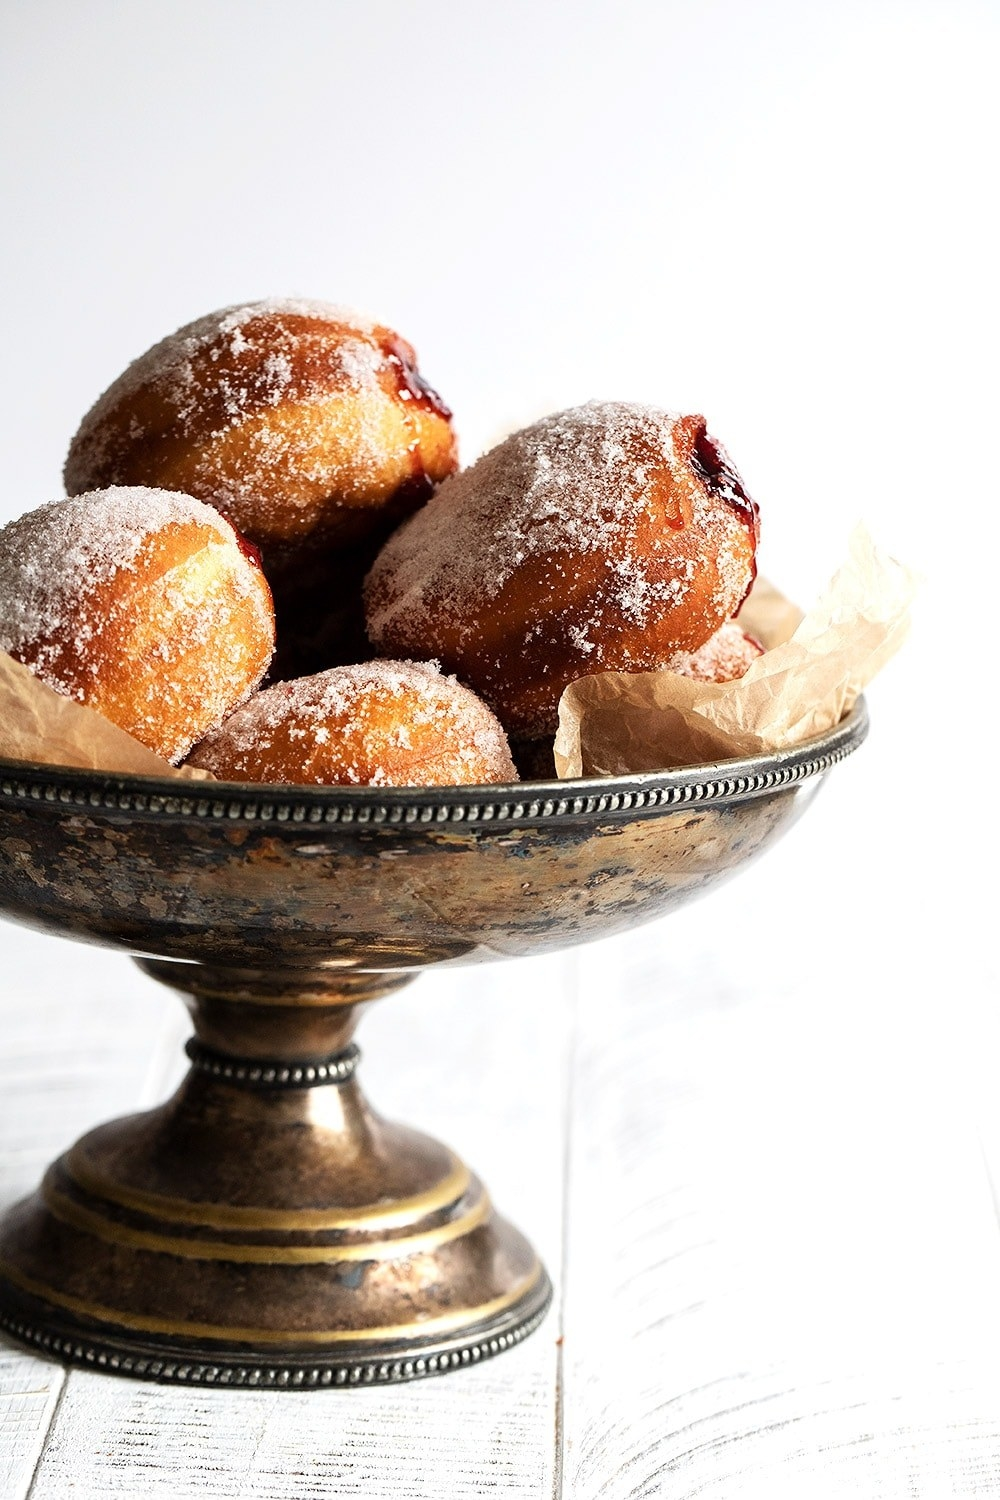 Metal bowl filled with powdered filled donuts